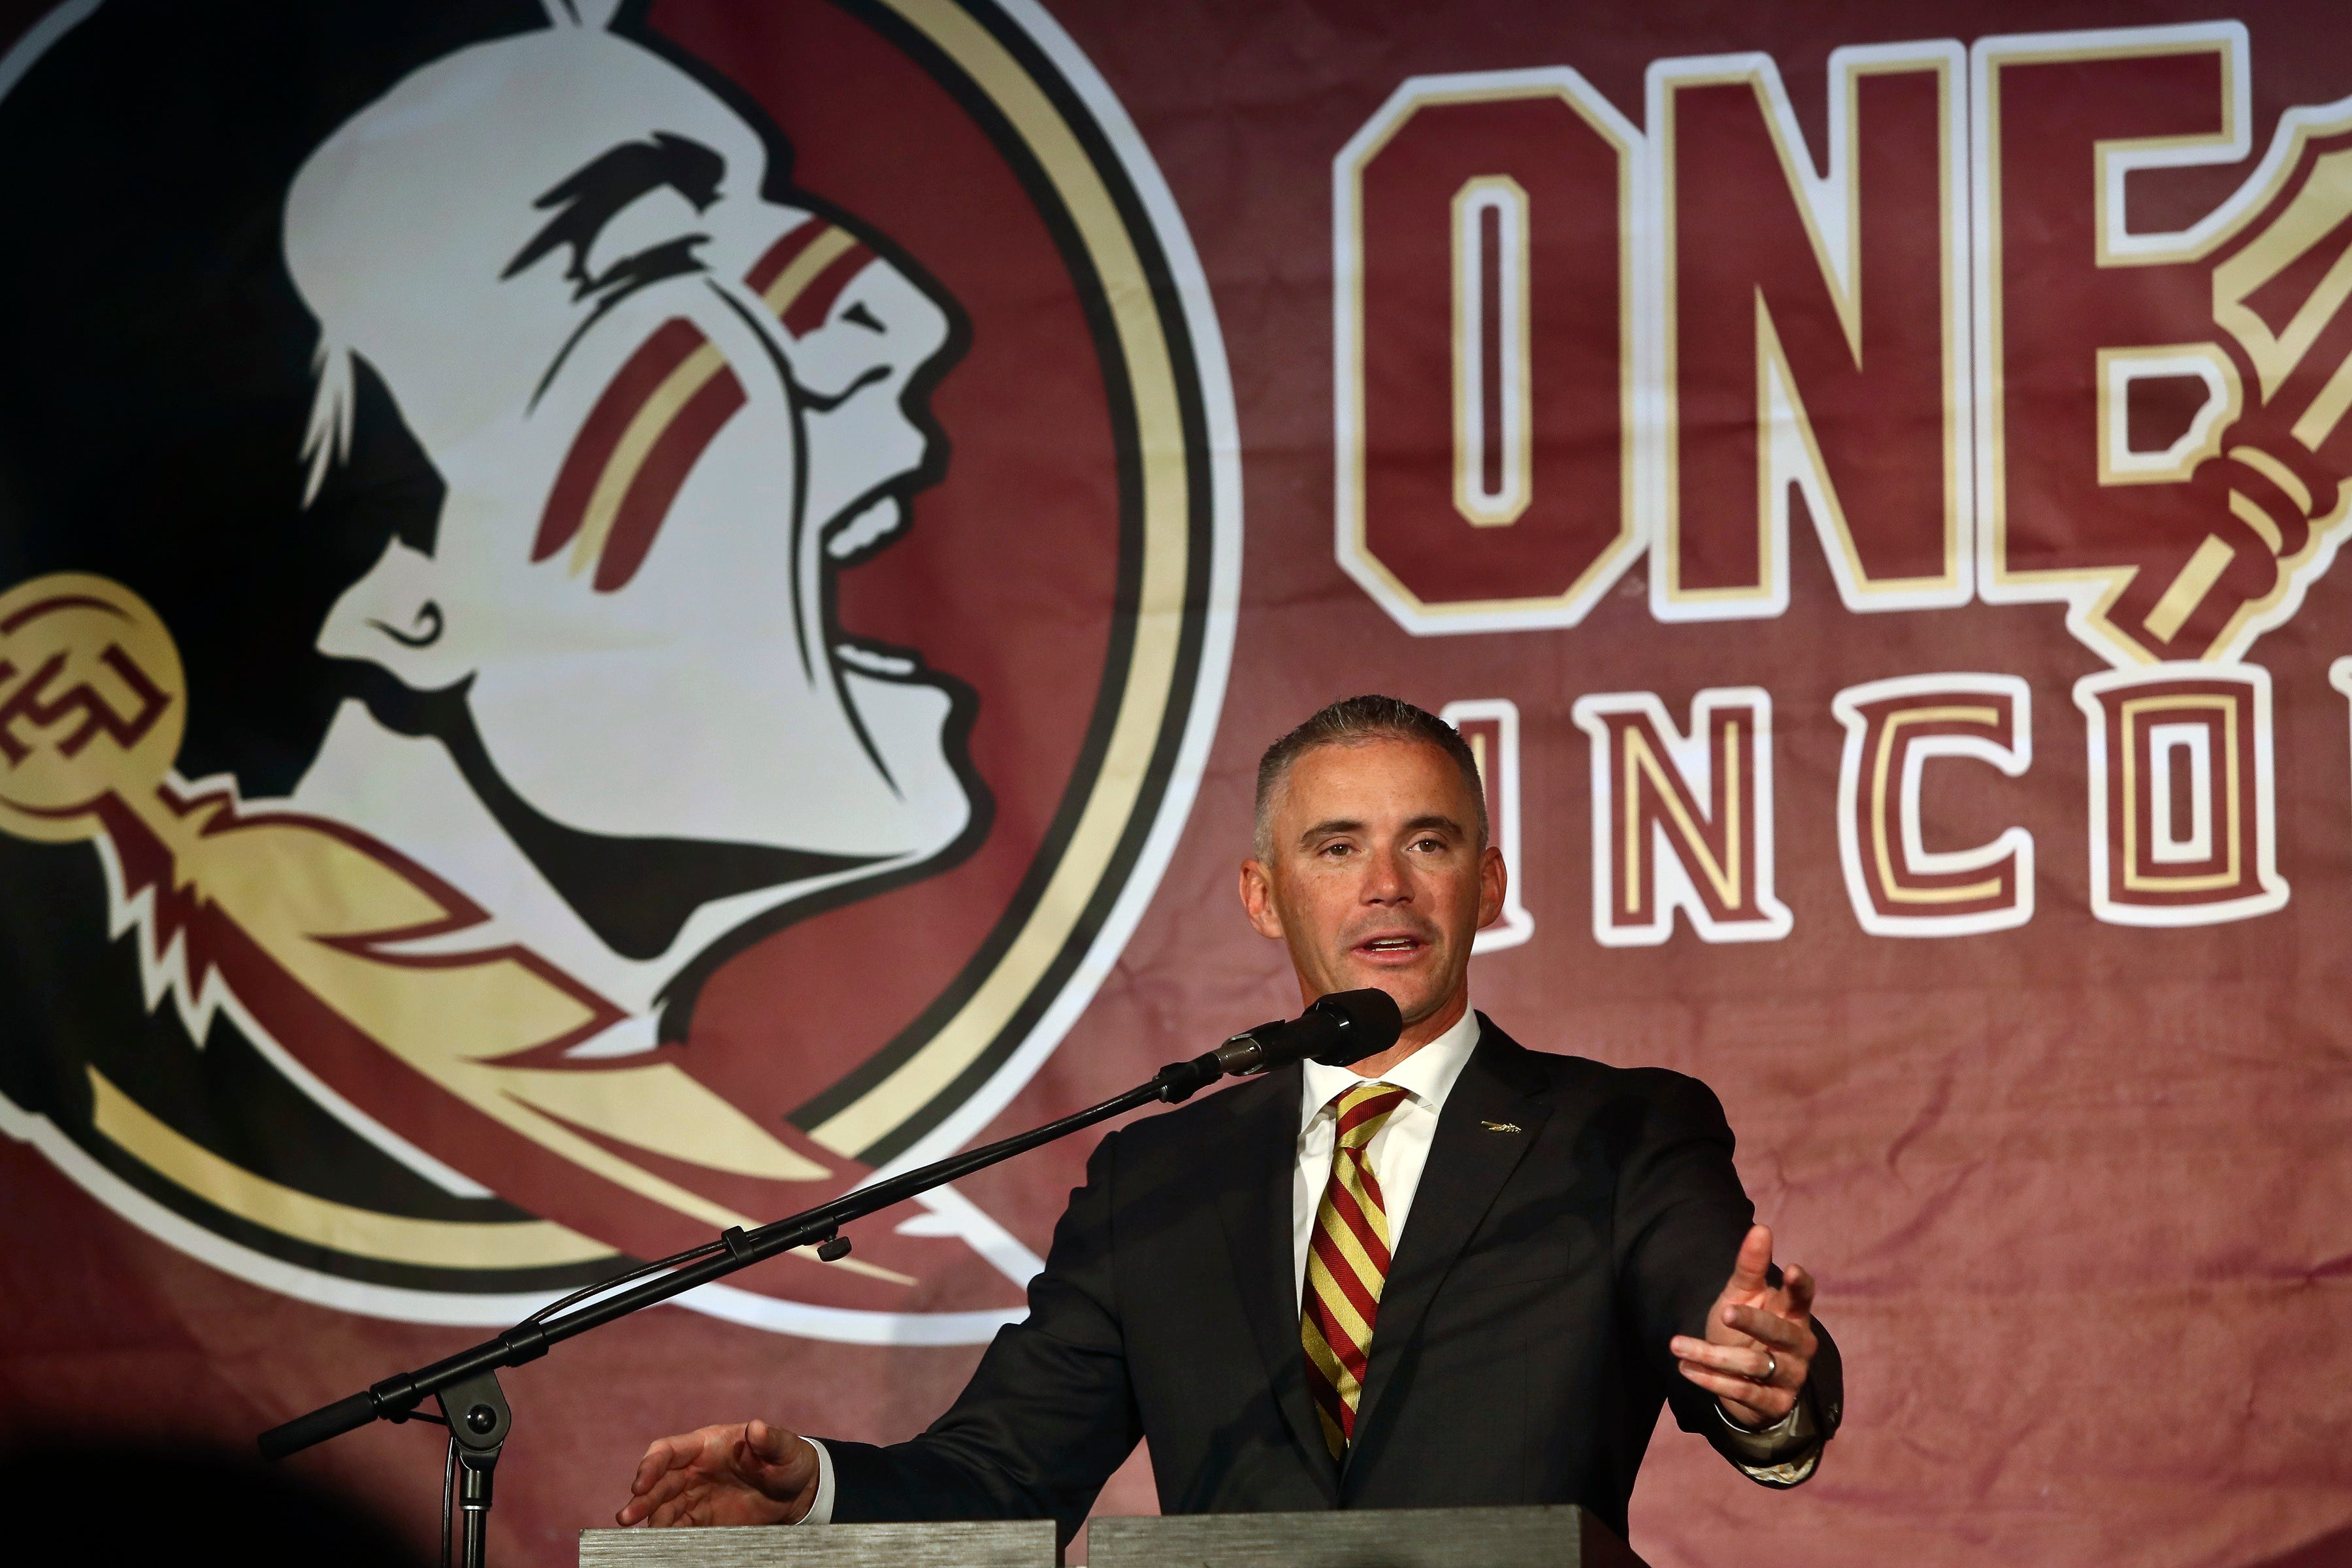 Florida State coach Mike Norvell to miss Miami (Fla.) game after testing positive for COVID-19